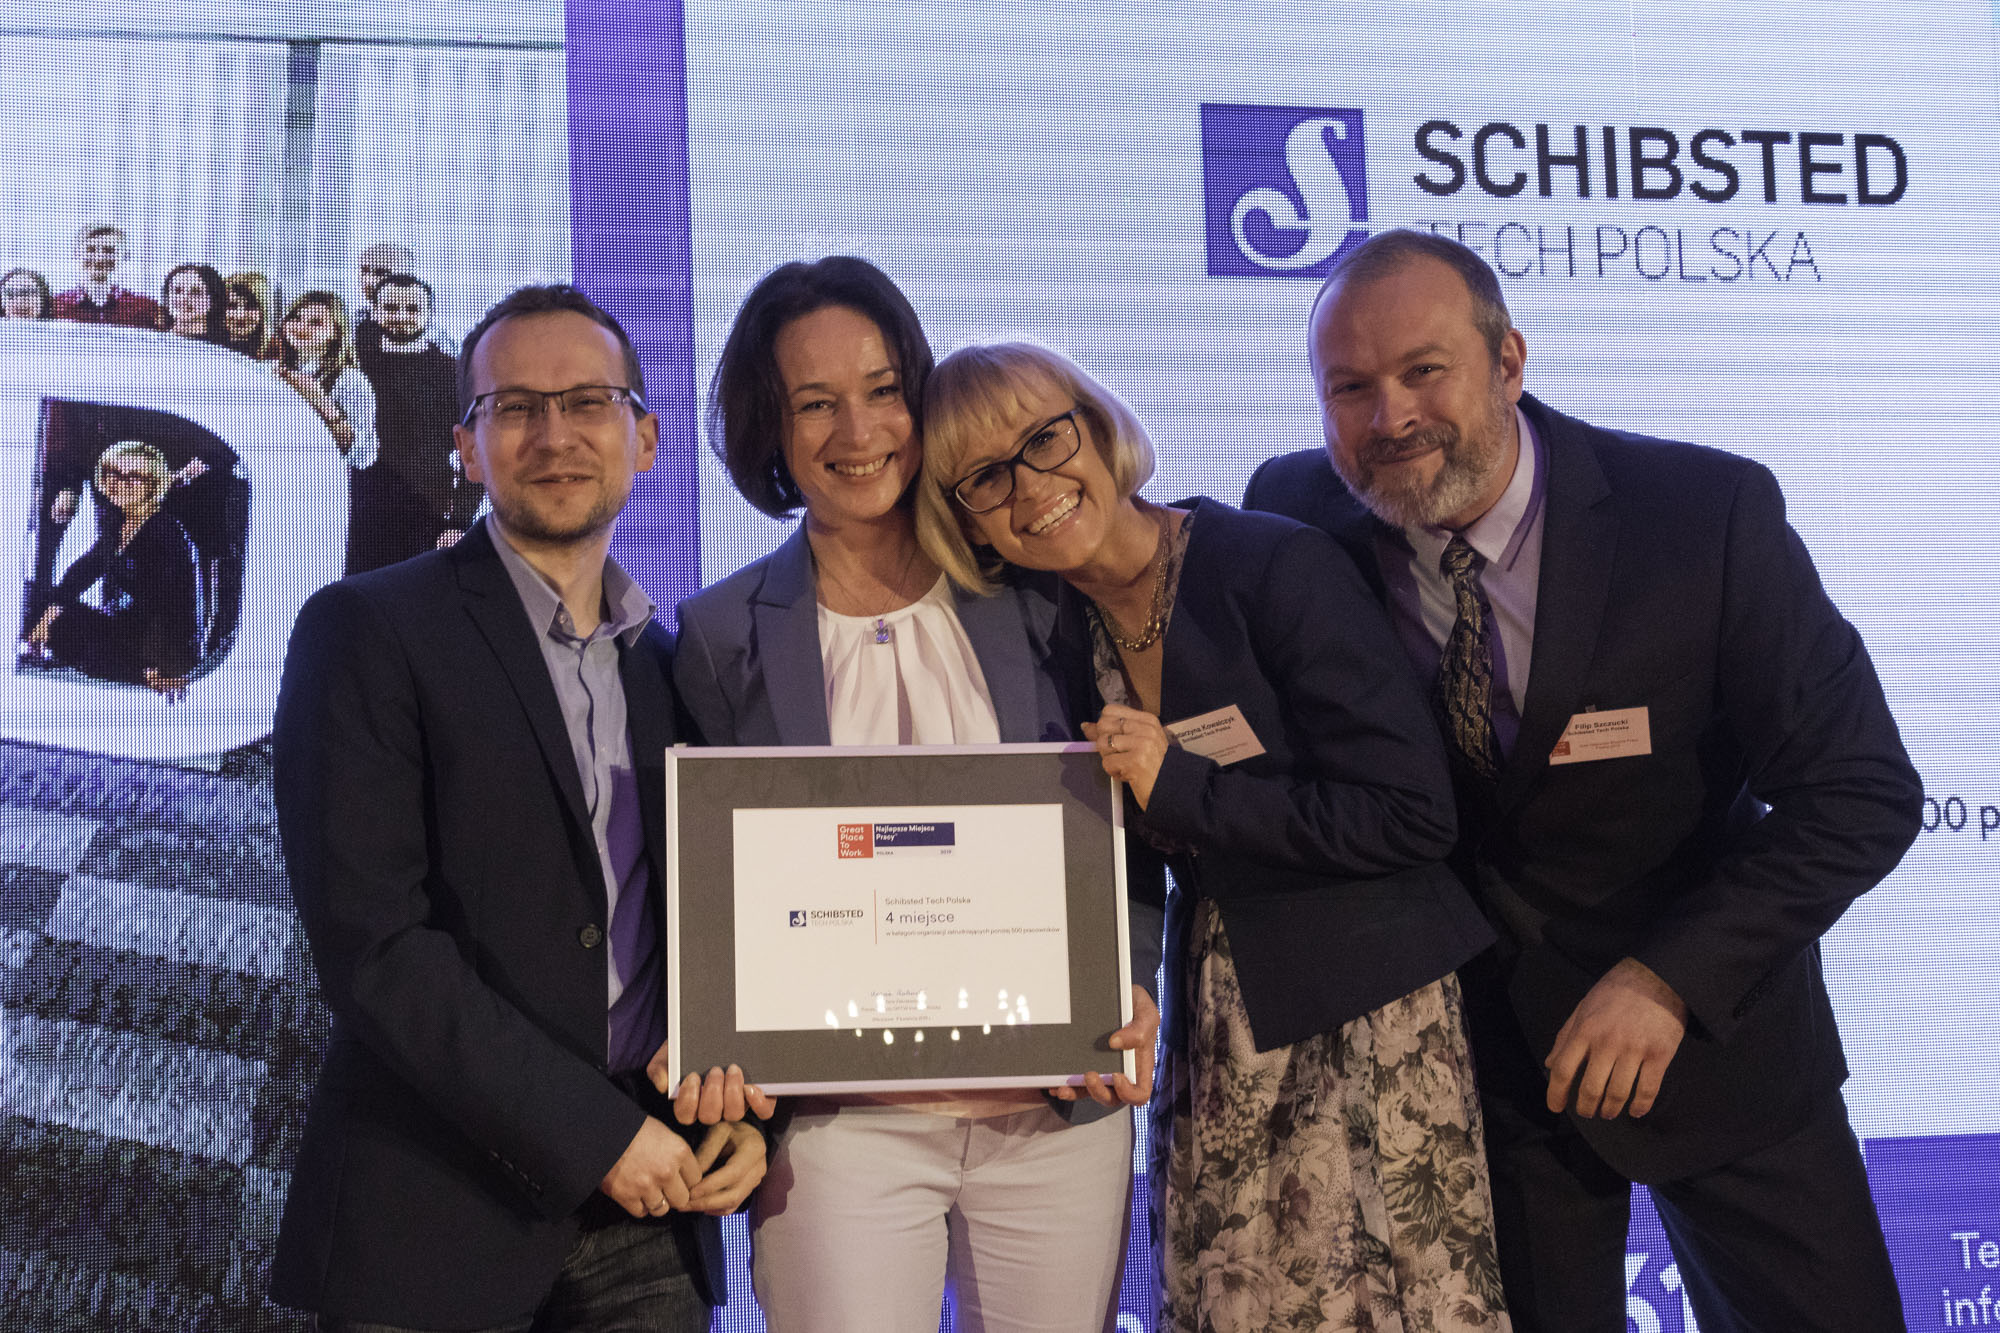 The Schibsted Tech Polska management team with the award diploma: Konrad Pietrzkiewicz, Joanna Zasadzińska, Katarzyna Kowalczyk, and Filip Szczucki.